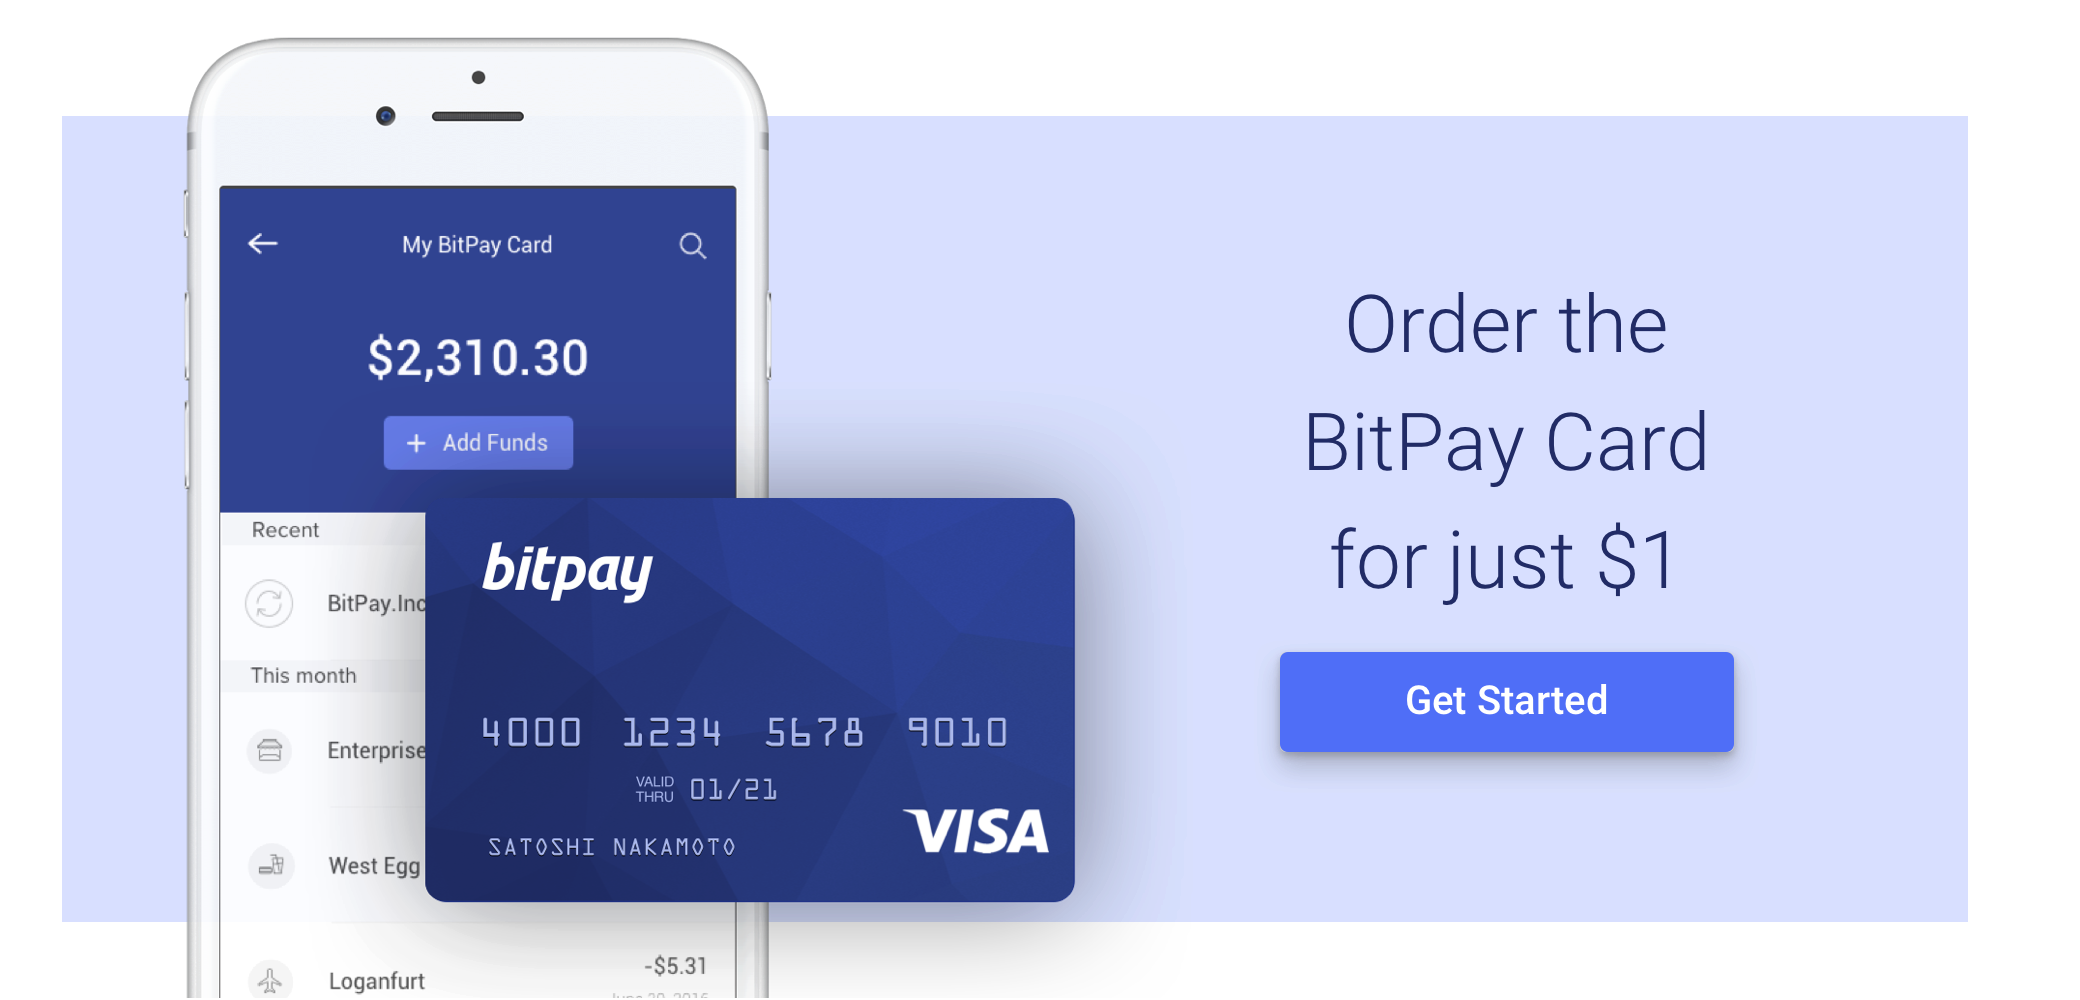 Limited Time: Get the BitPay Card for Just $1